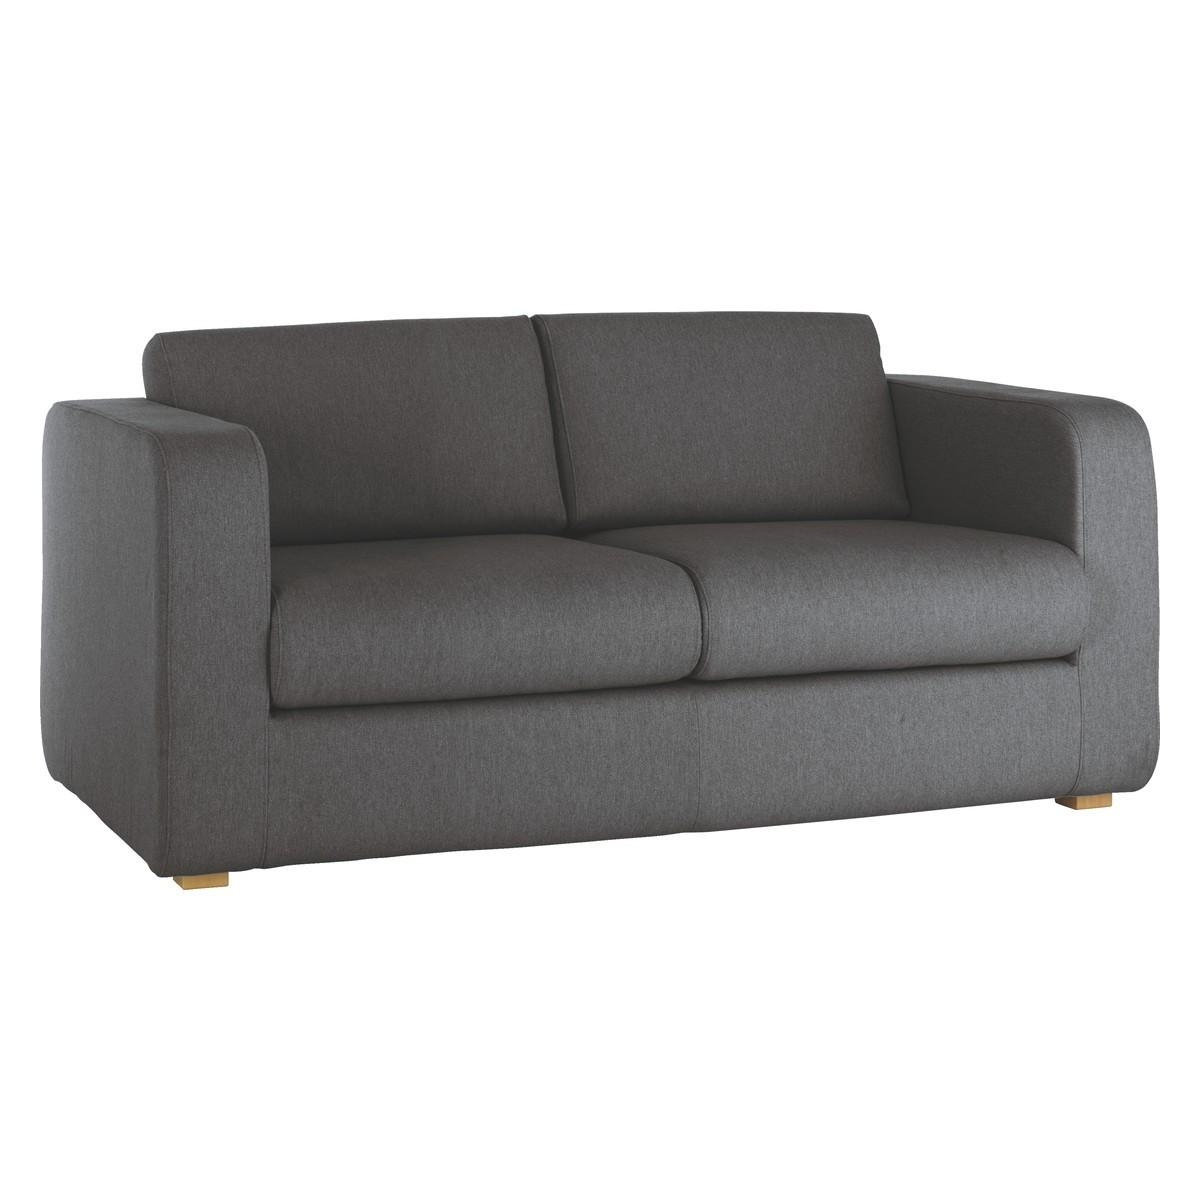 20 Best Small Grey Sofas